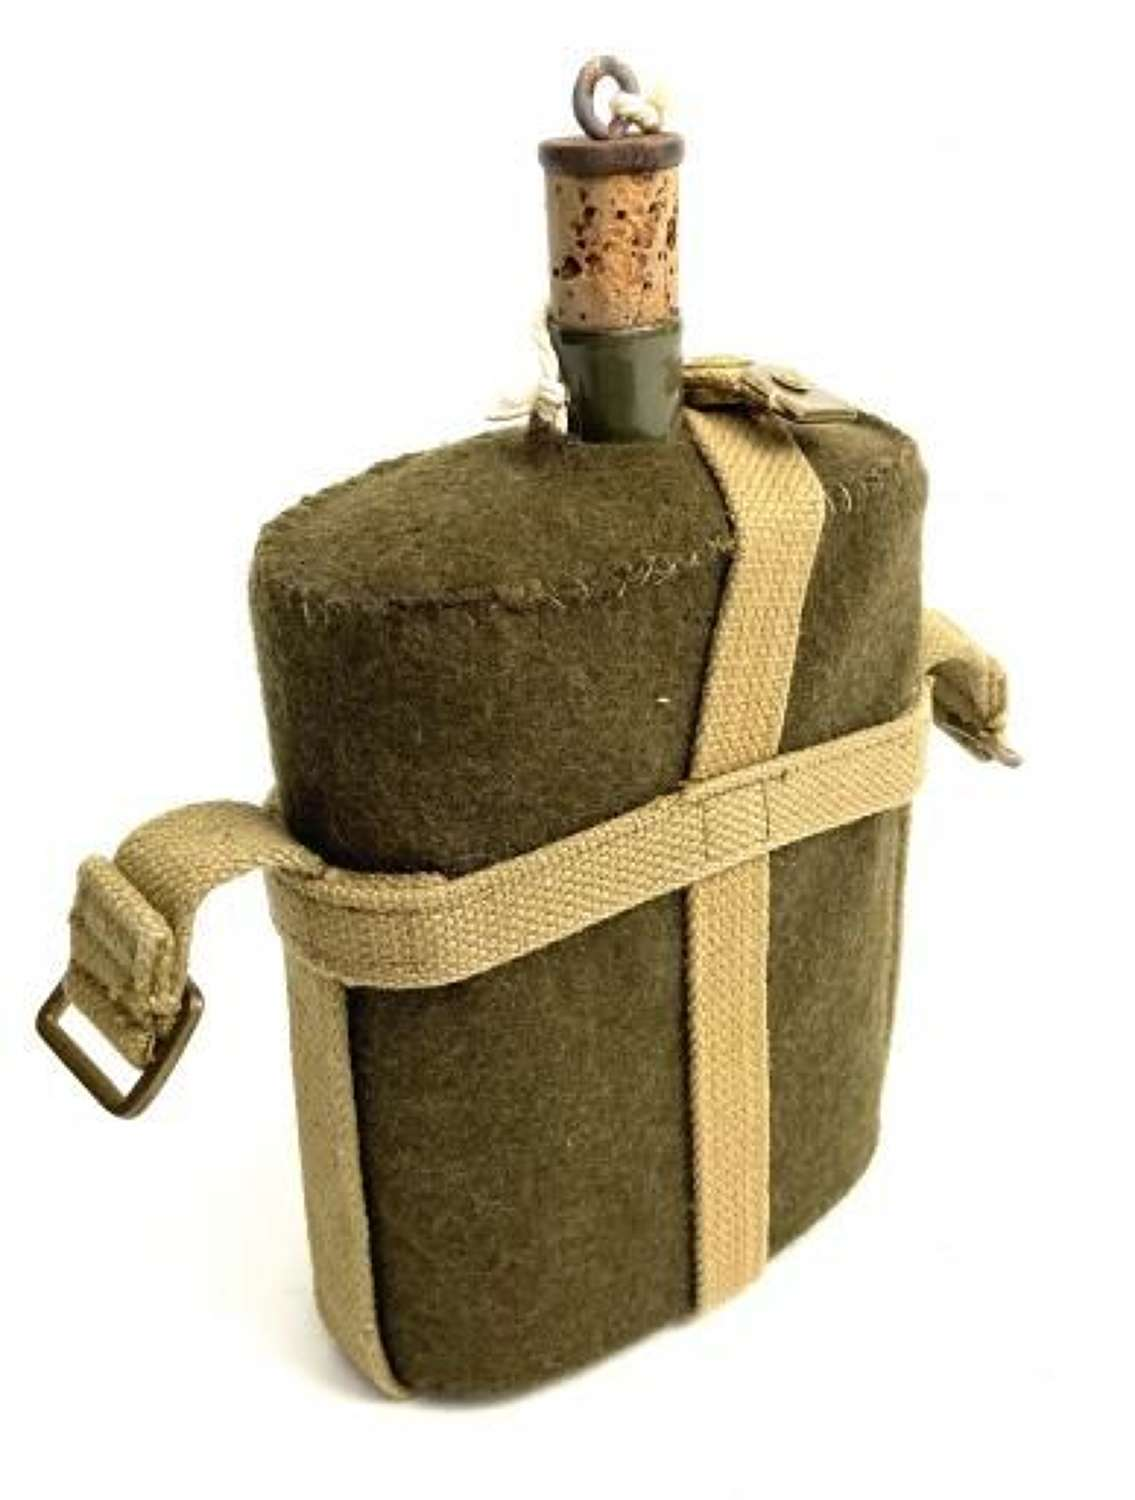 Original 1955 Dated British Army Water Bottle and Webbing Cradle